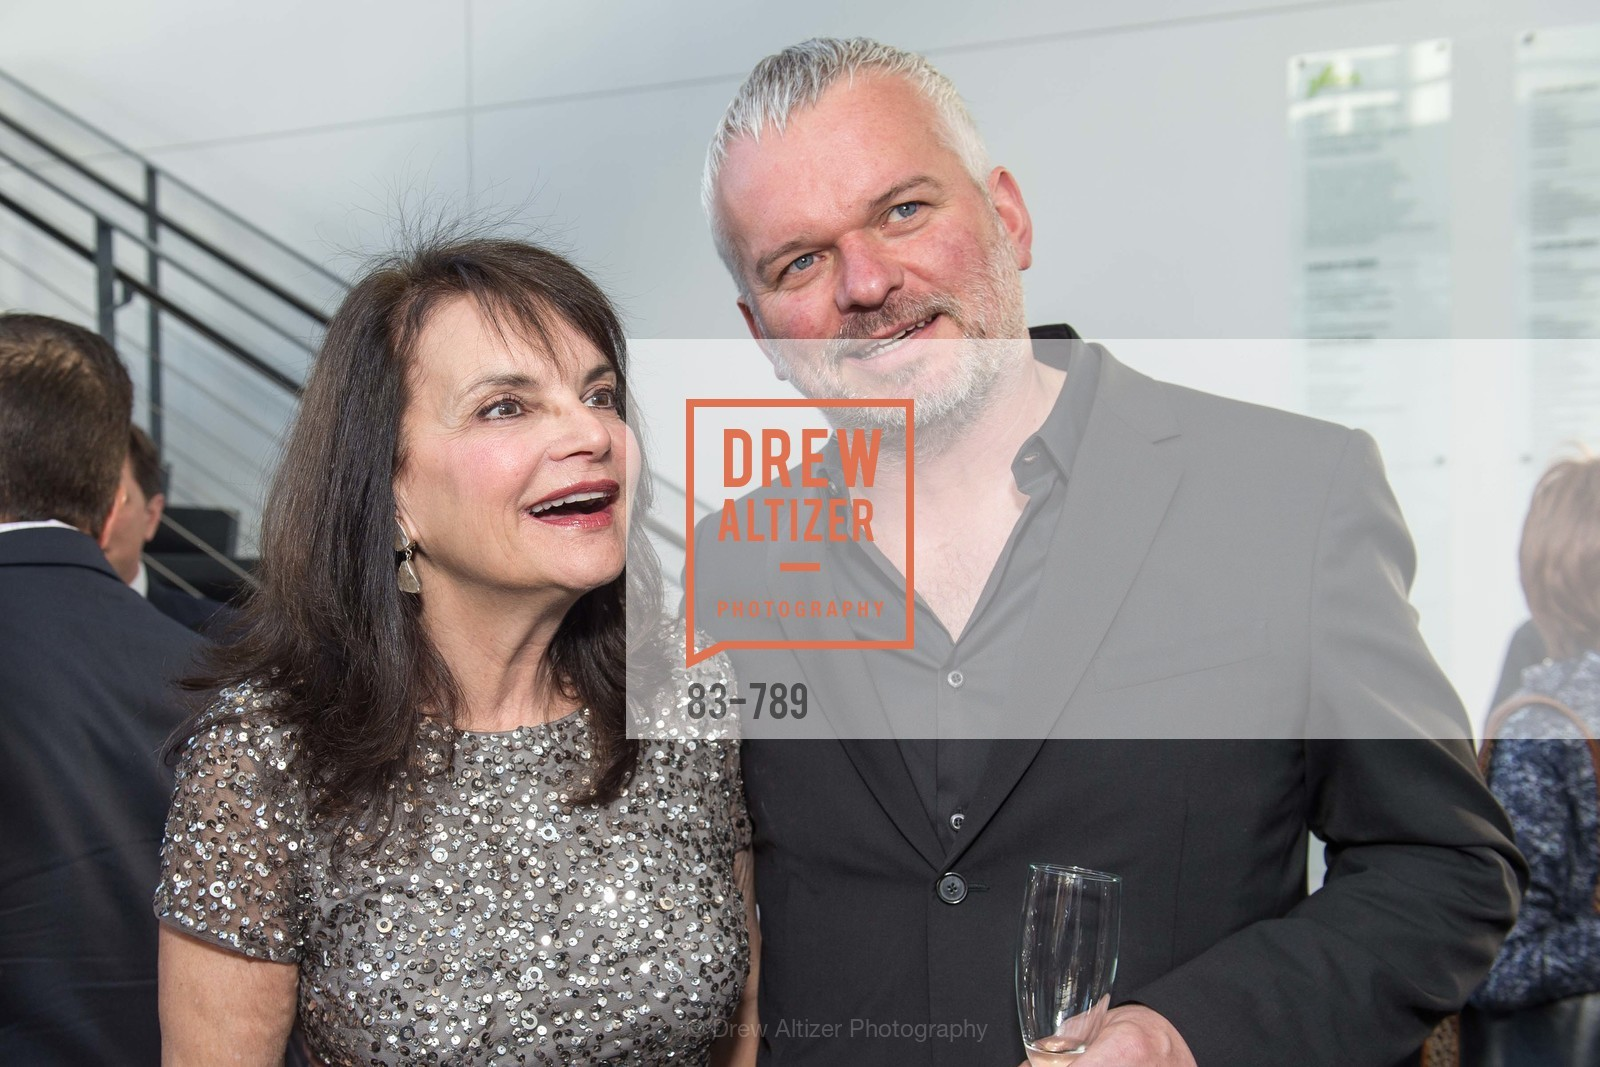 Janette Gitler, Wilhelm Oehl, ALONZO KING LINE'S Ballet Spring Gala 2015, US, April 11th, 2015,Drew Altizer, Drew Altizer Photography, full-service agency, private events, San Francisco photographer, photographer california